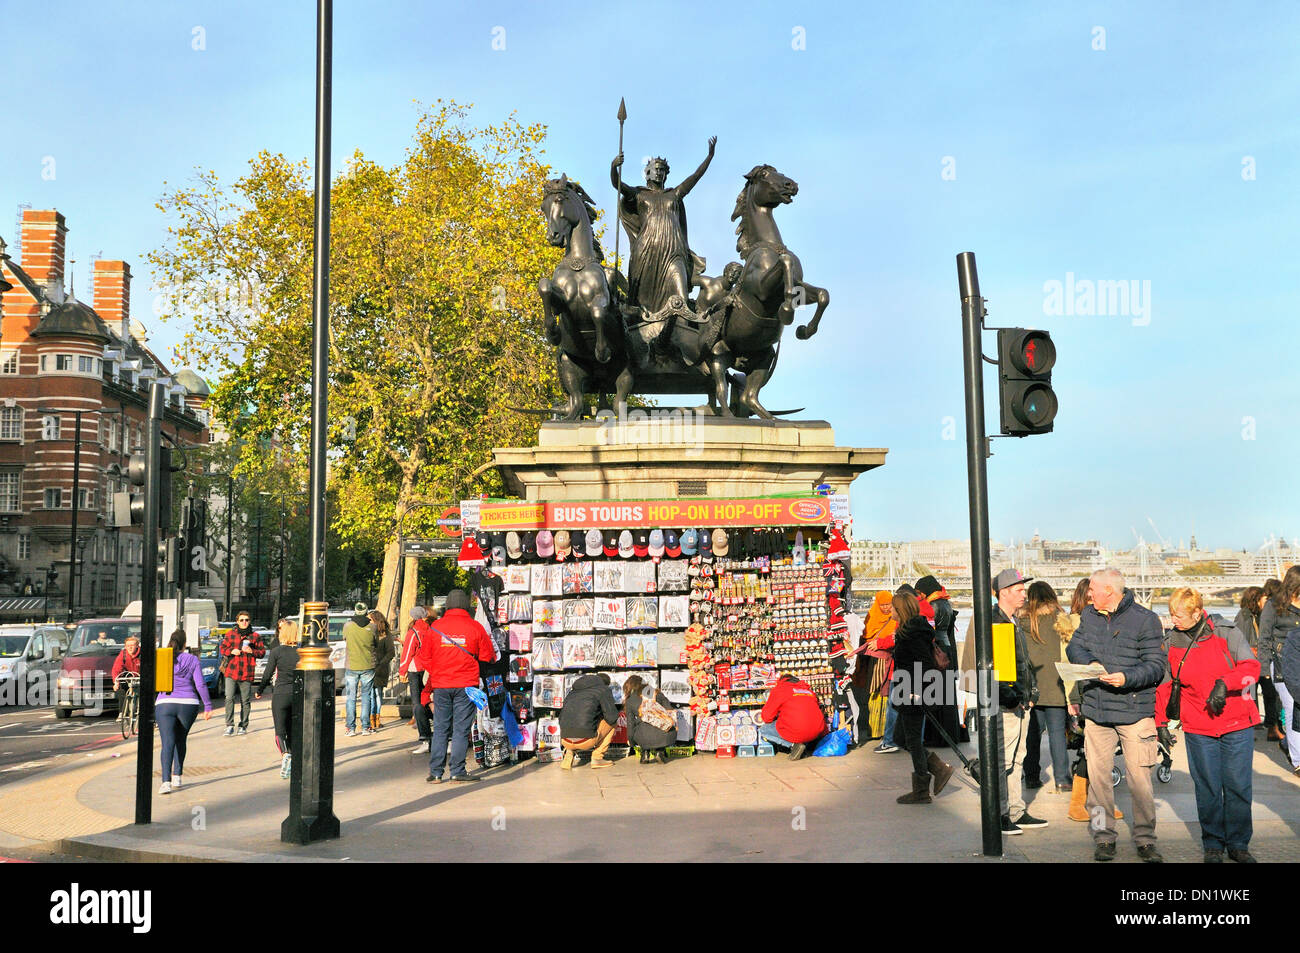 Tourists browsing souvenir stall beneath the Chariot of Boadicea, Westminster, London, England, UK - Stock Image